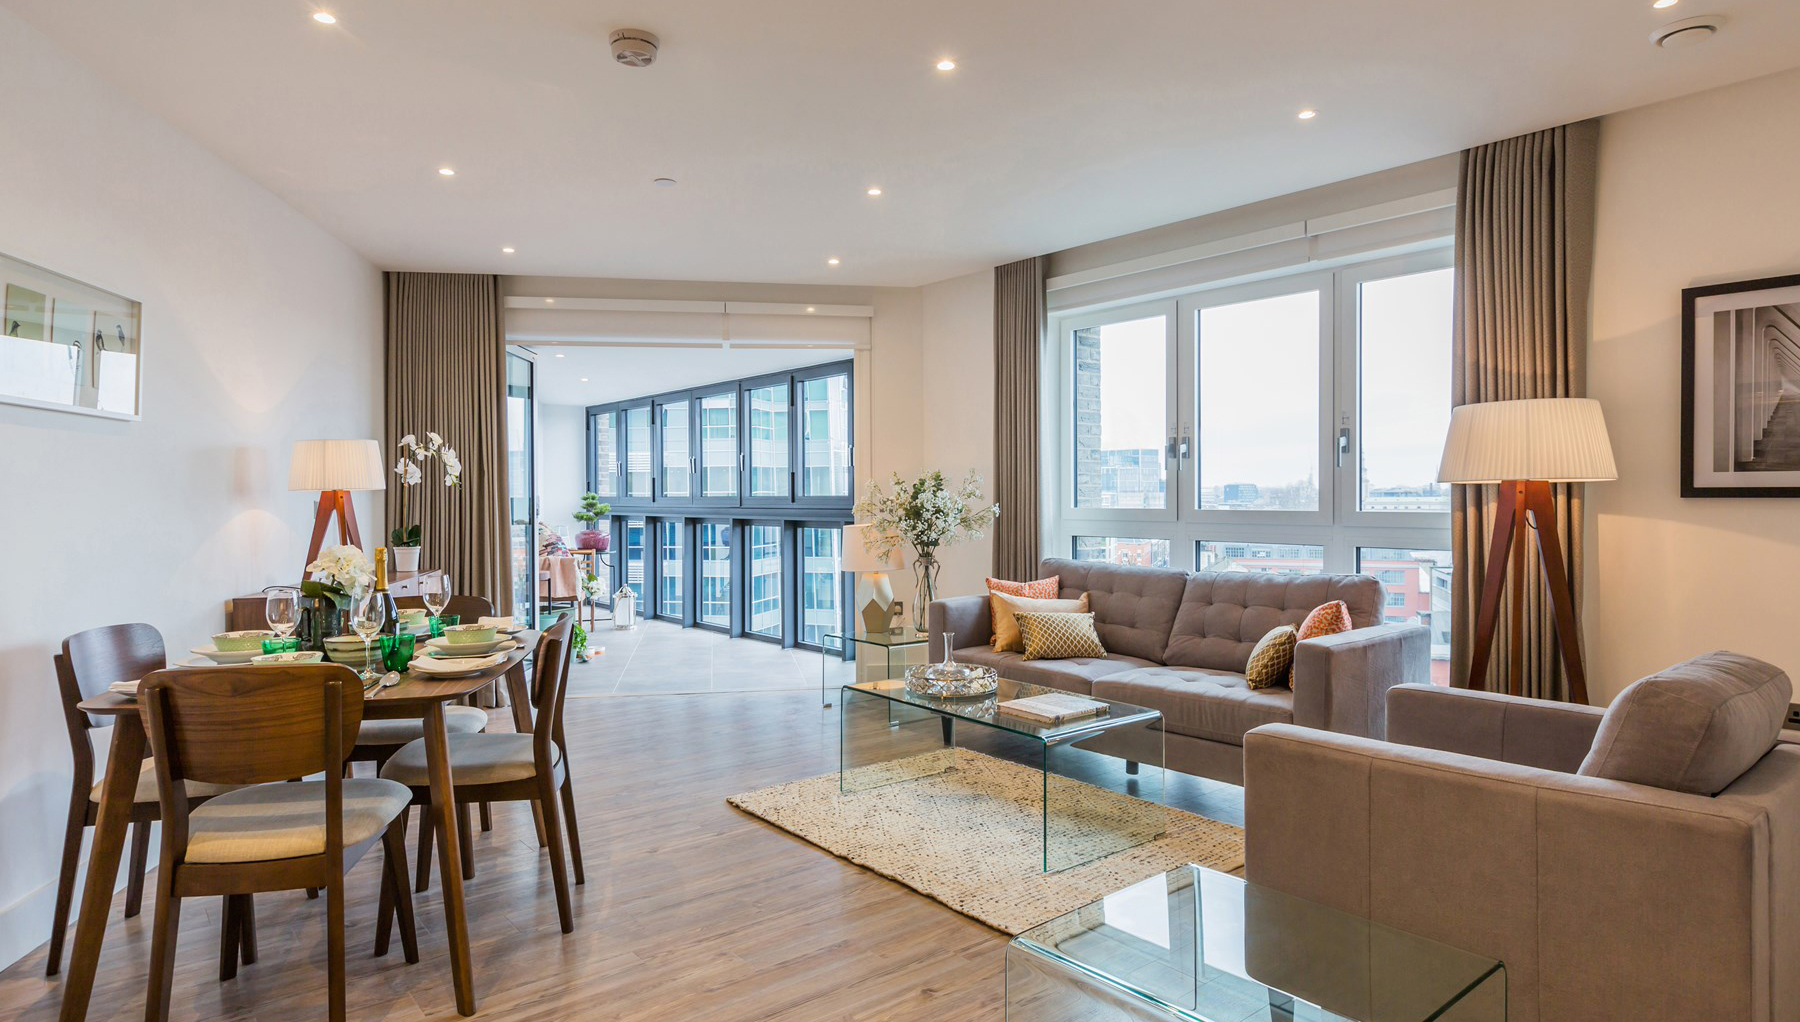 The MyLo Aldgate Apartments in the City of London